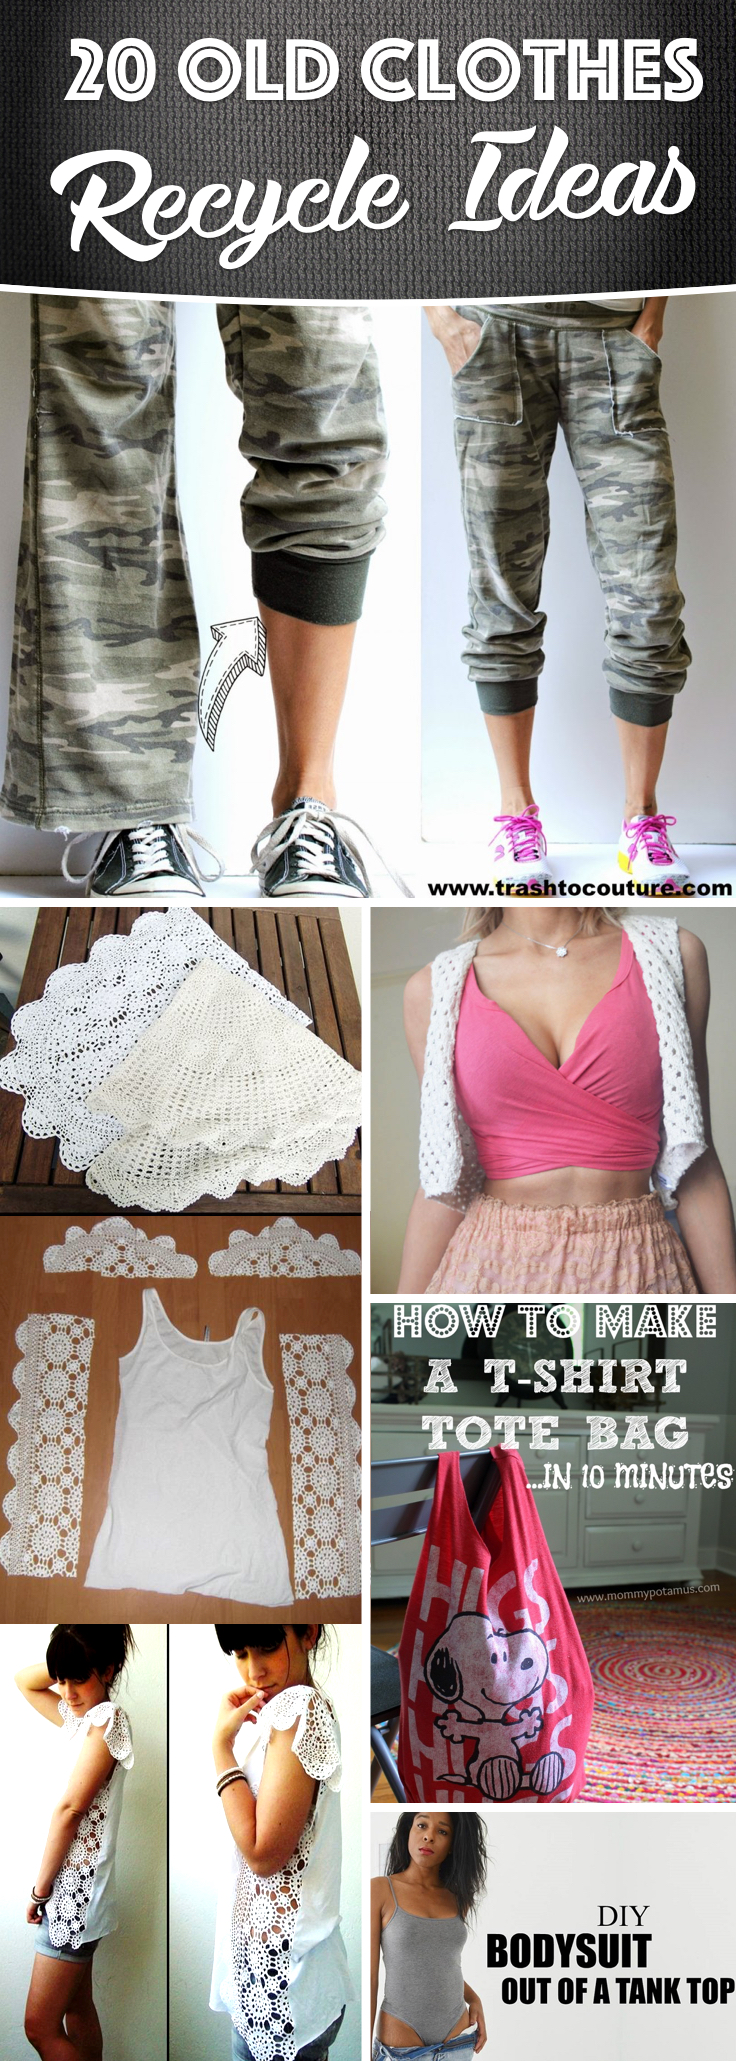 20 Old Clothes Recycle Ideas That You